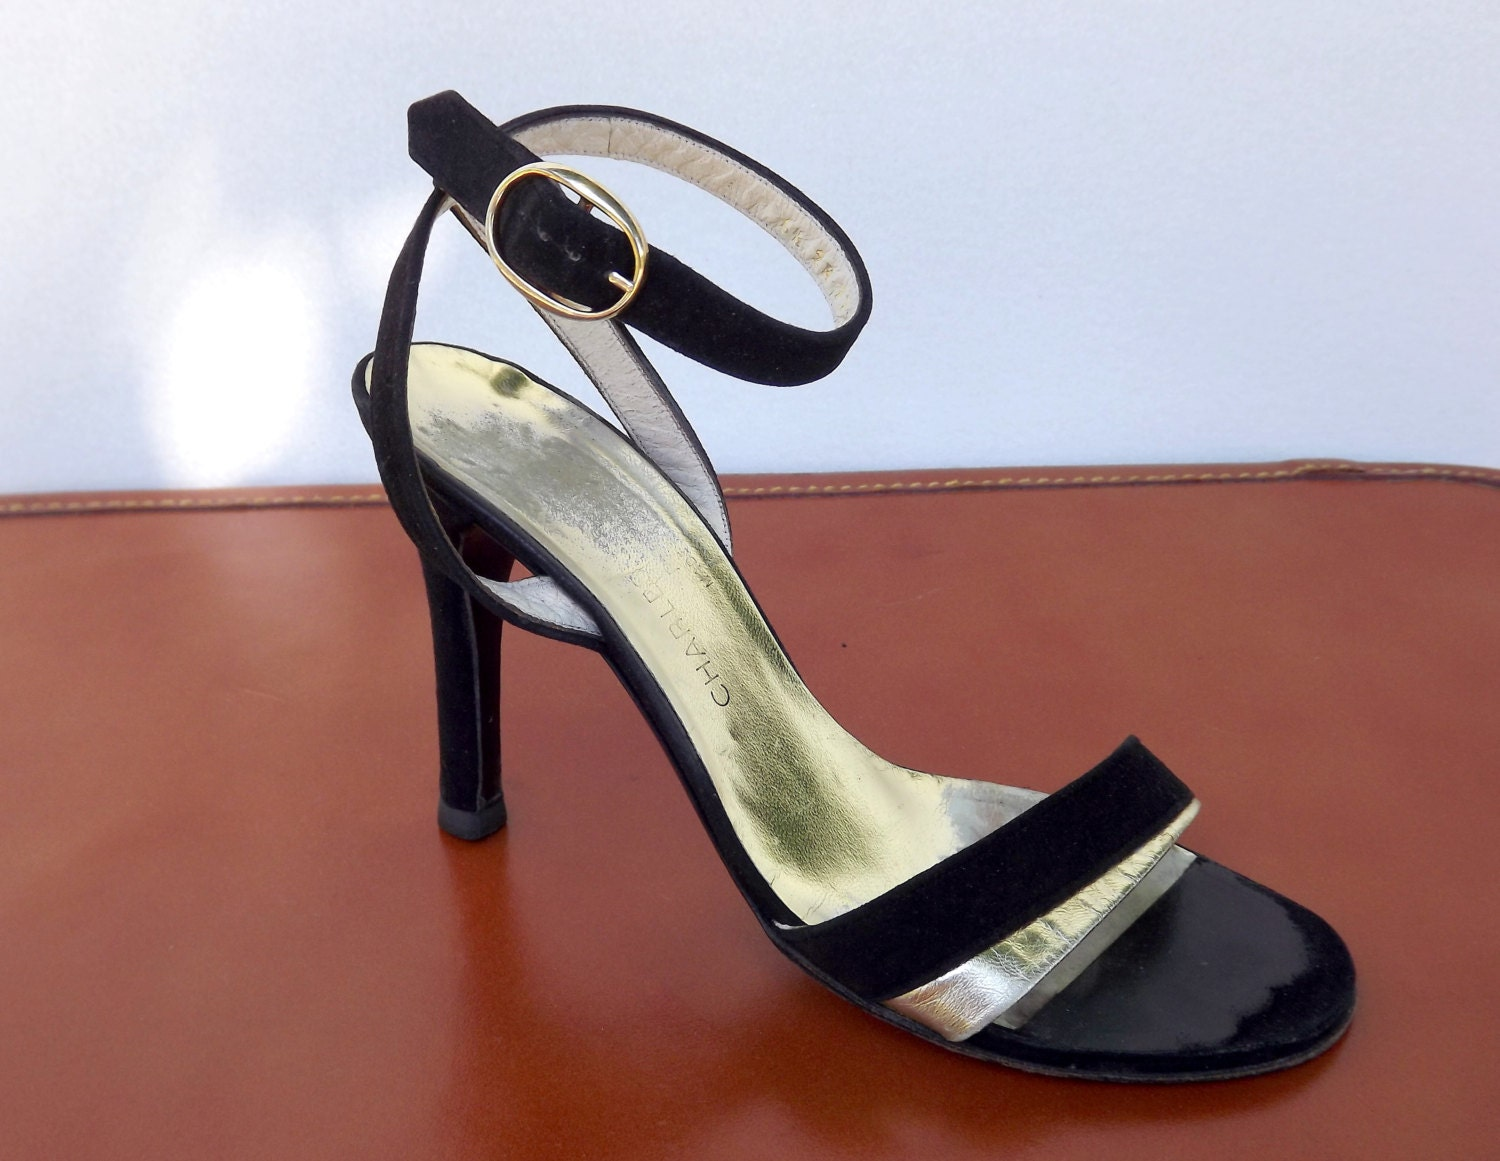 Sexy Spike Heel Shoes, Ankle Strap Sandals, Black and Gold, Designer Charles Jourdan, Size 6.5 AA Narrow - ForsythiaHill